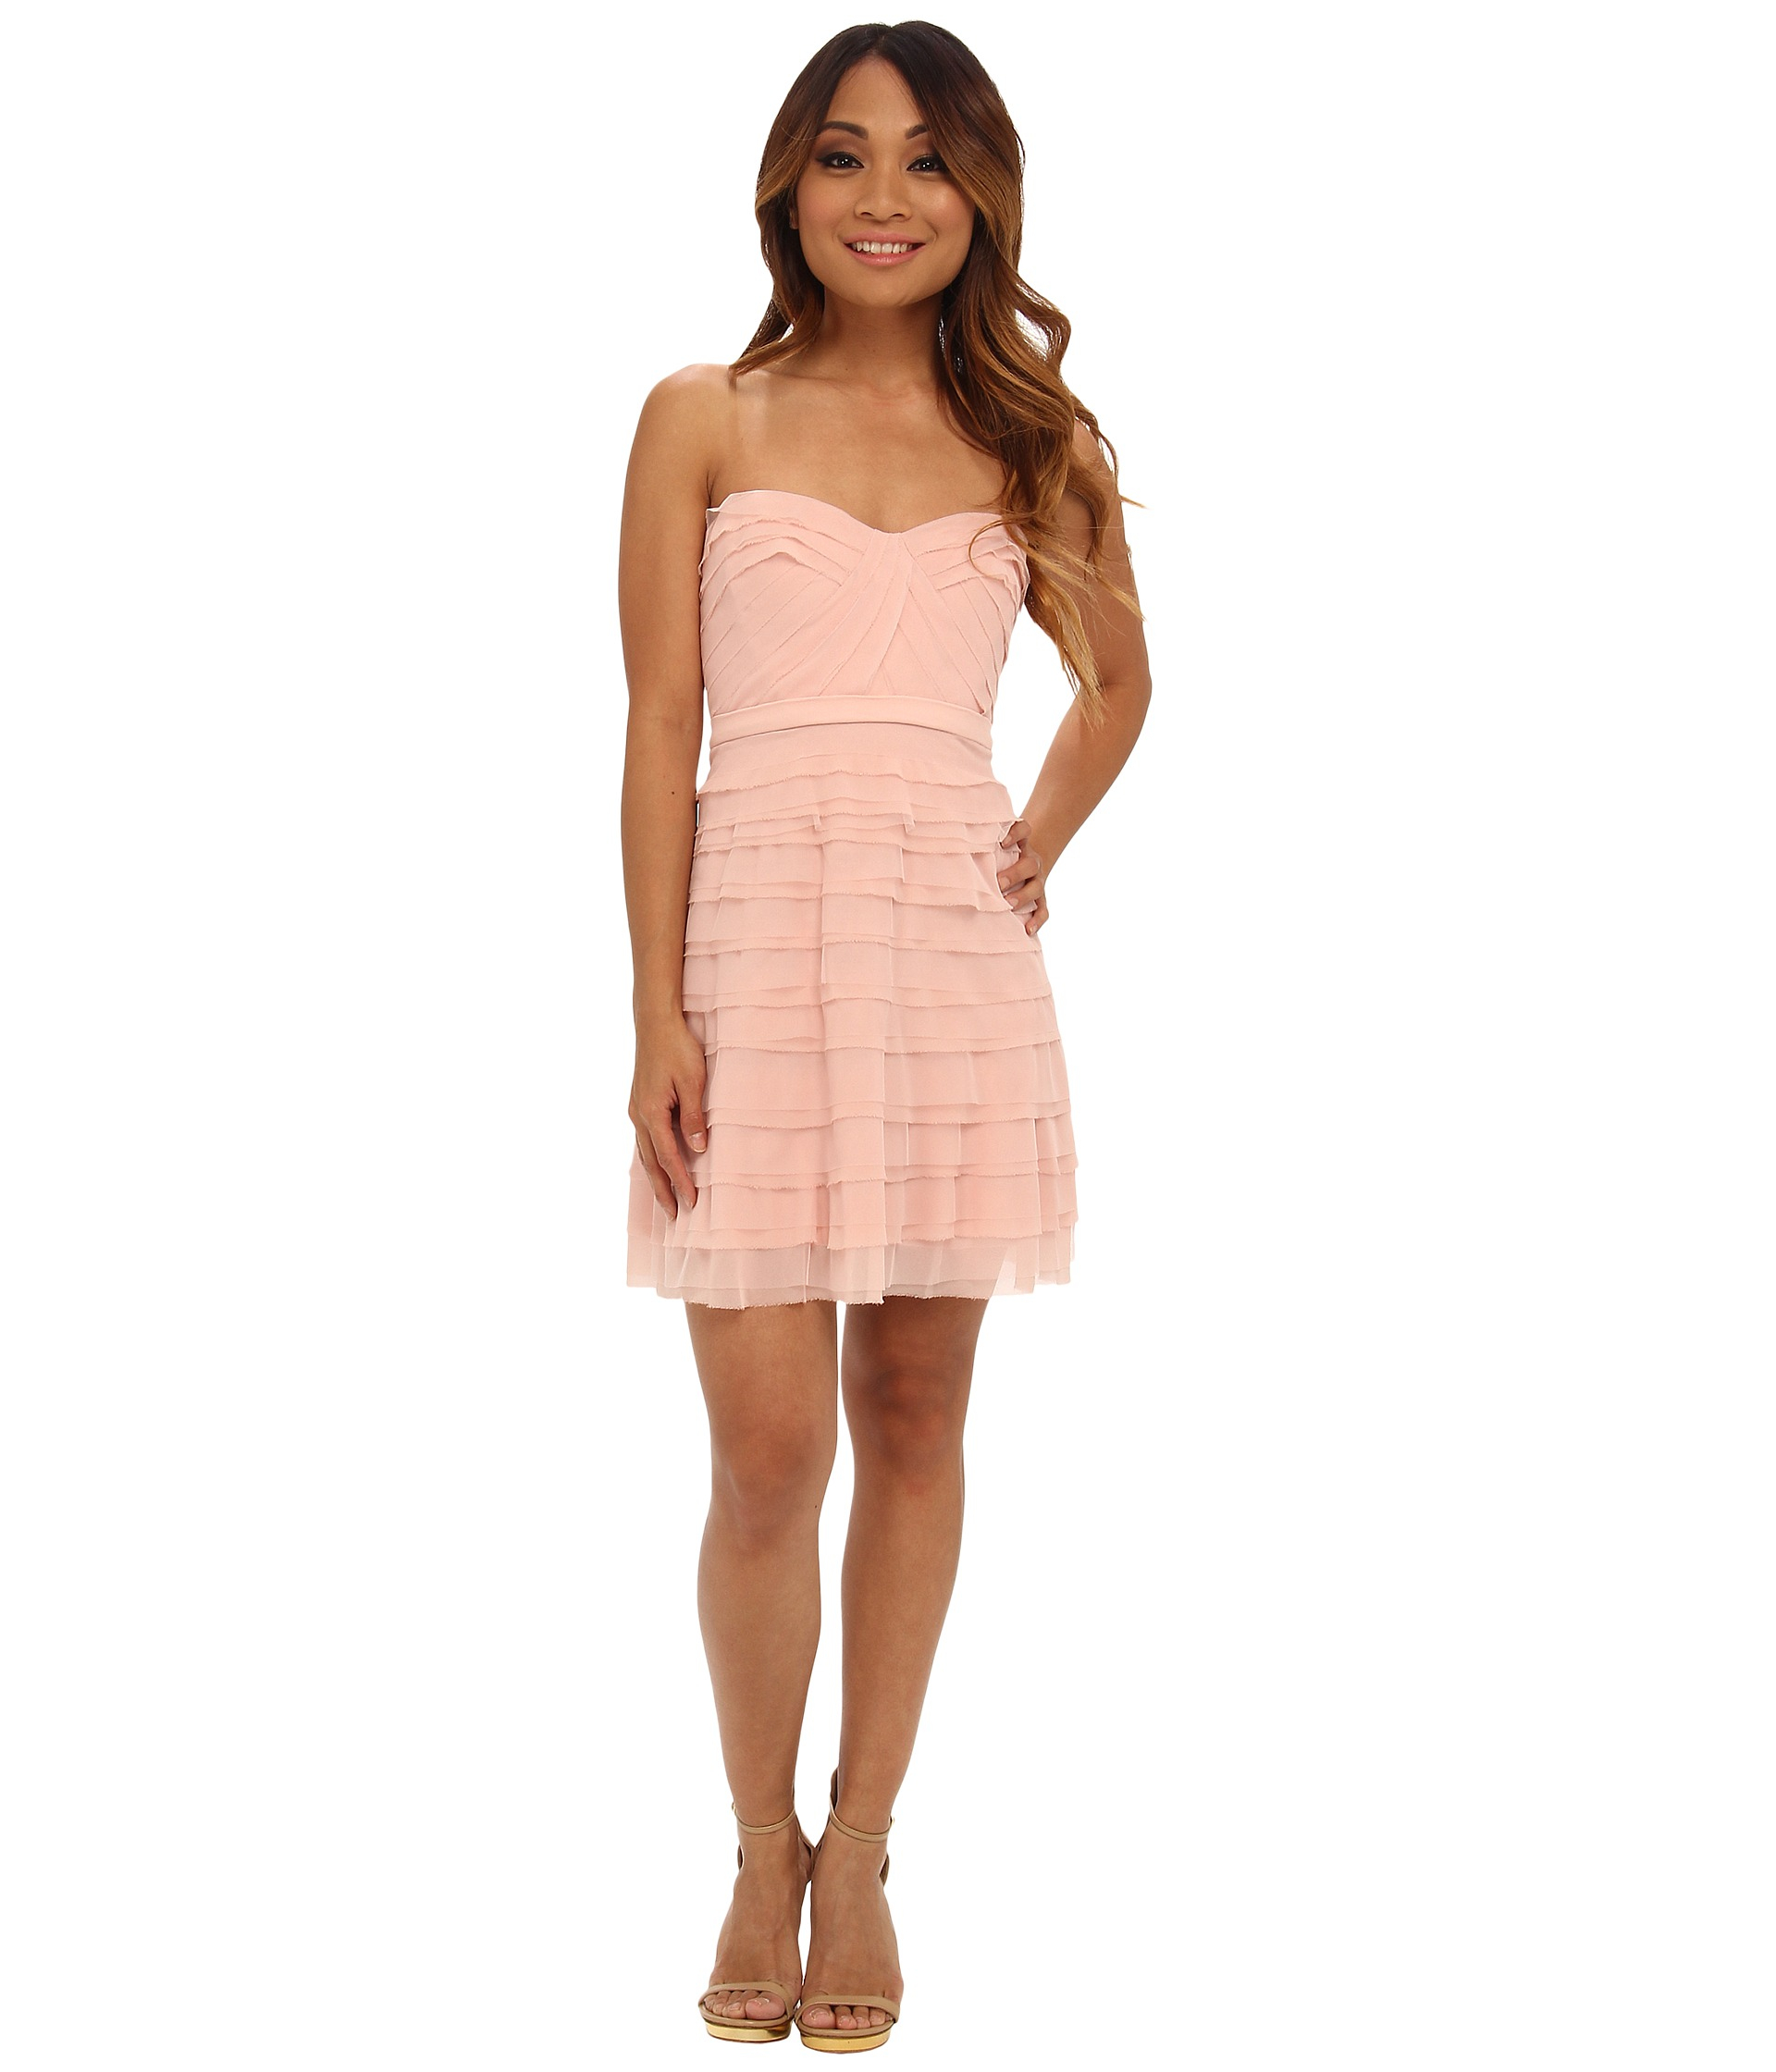 Bcbgmaxazria Petite Cocco Tiered Strapless Dress in Pink | Lyst